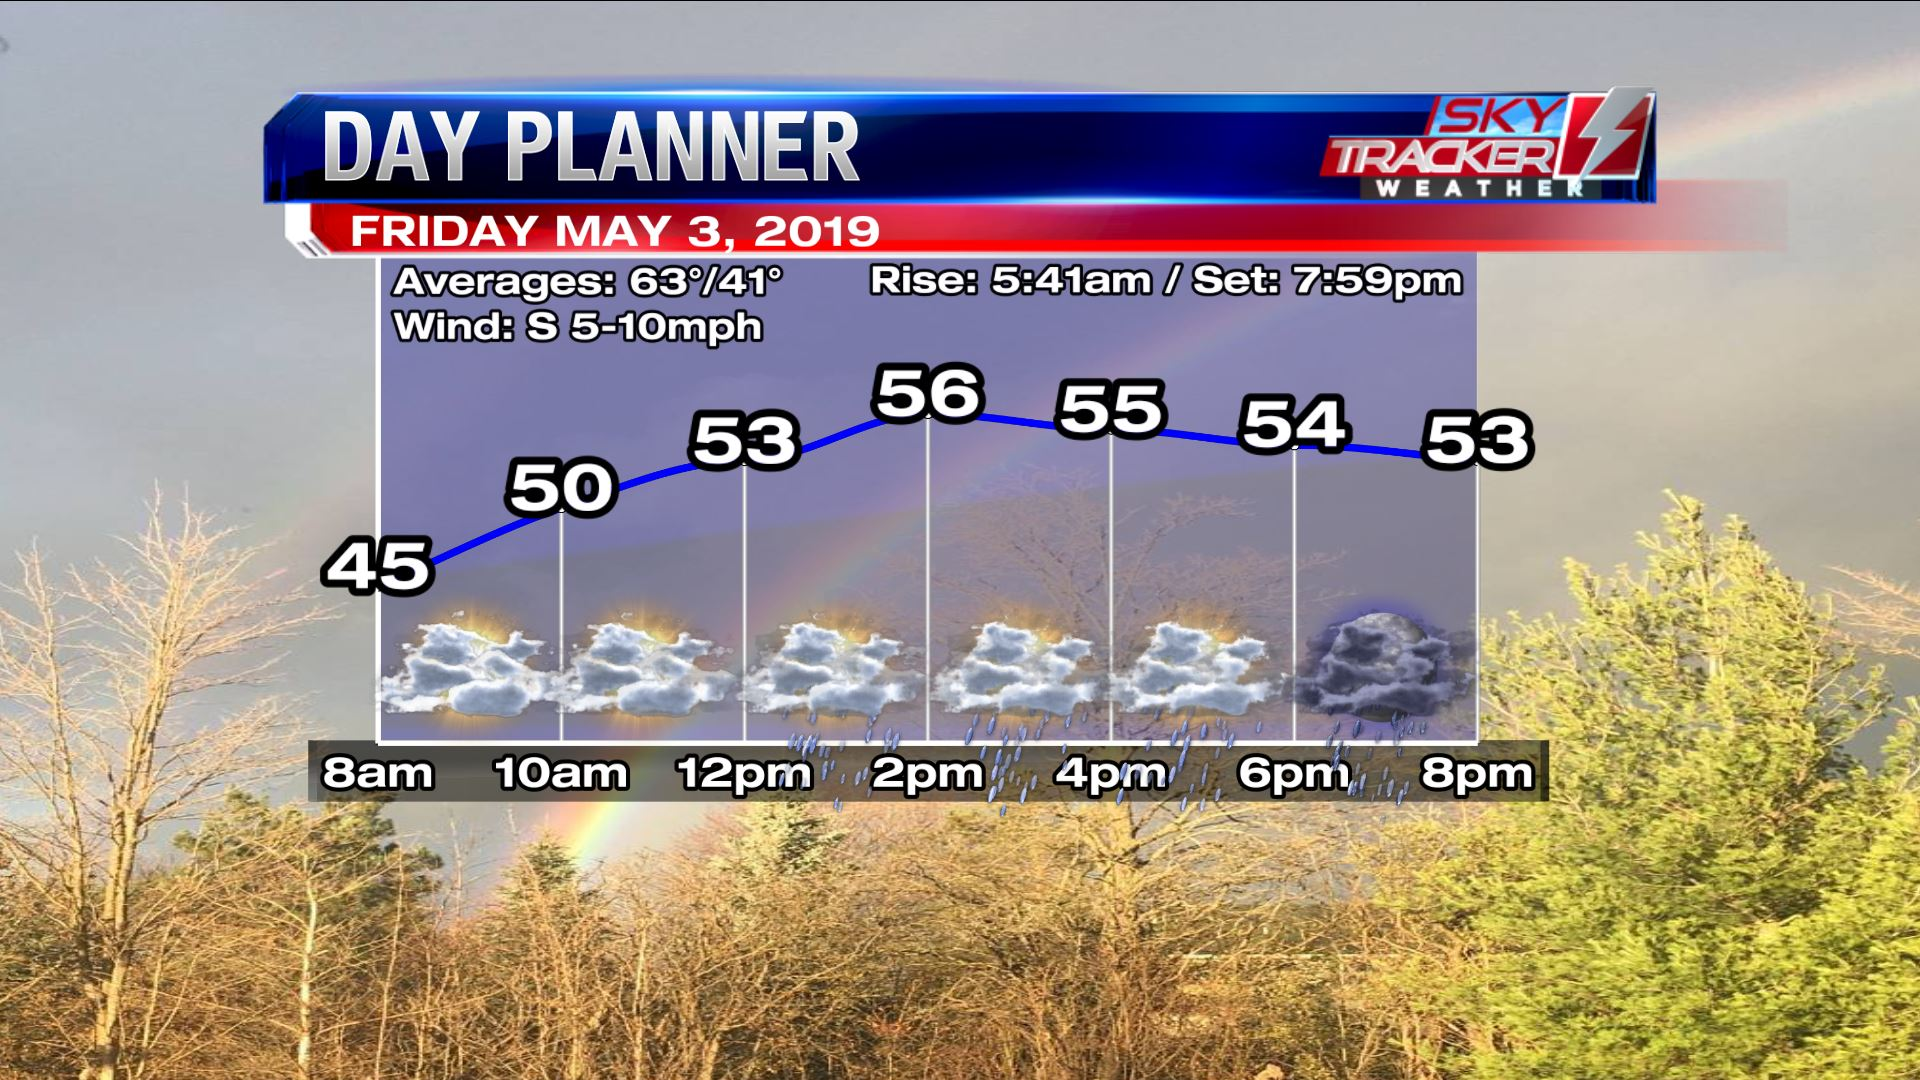 Planner for Friday May 3 2019